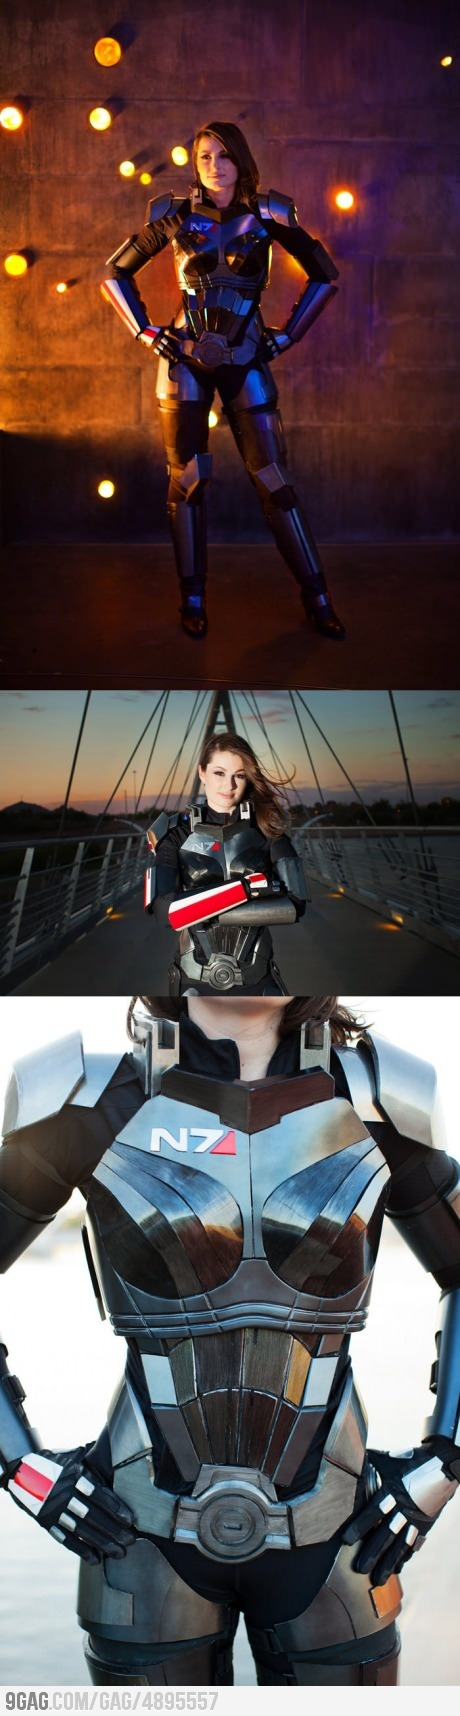 Awesome Mass Effect 3 N7 Armor (Femshep) wish I could have this for Halloween. I love it.